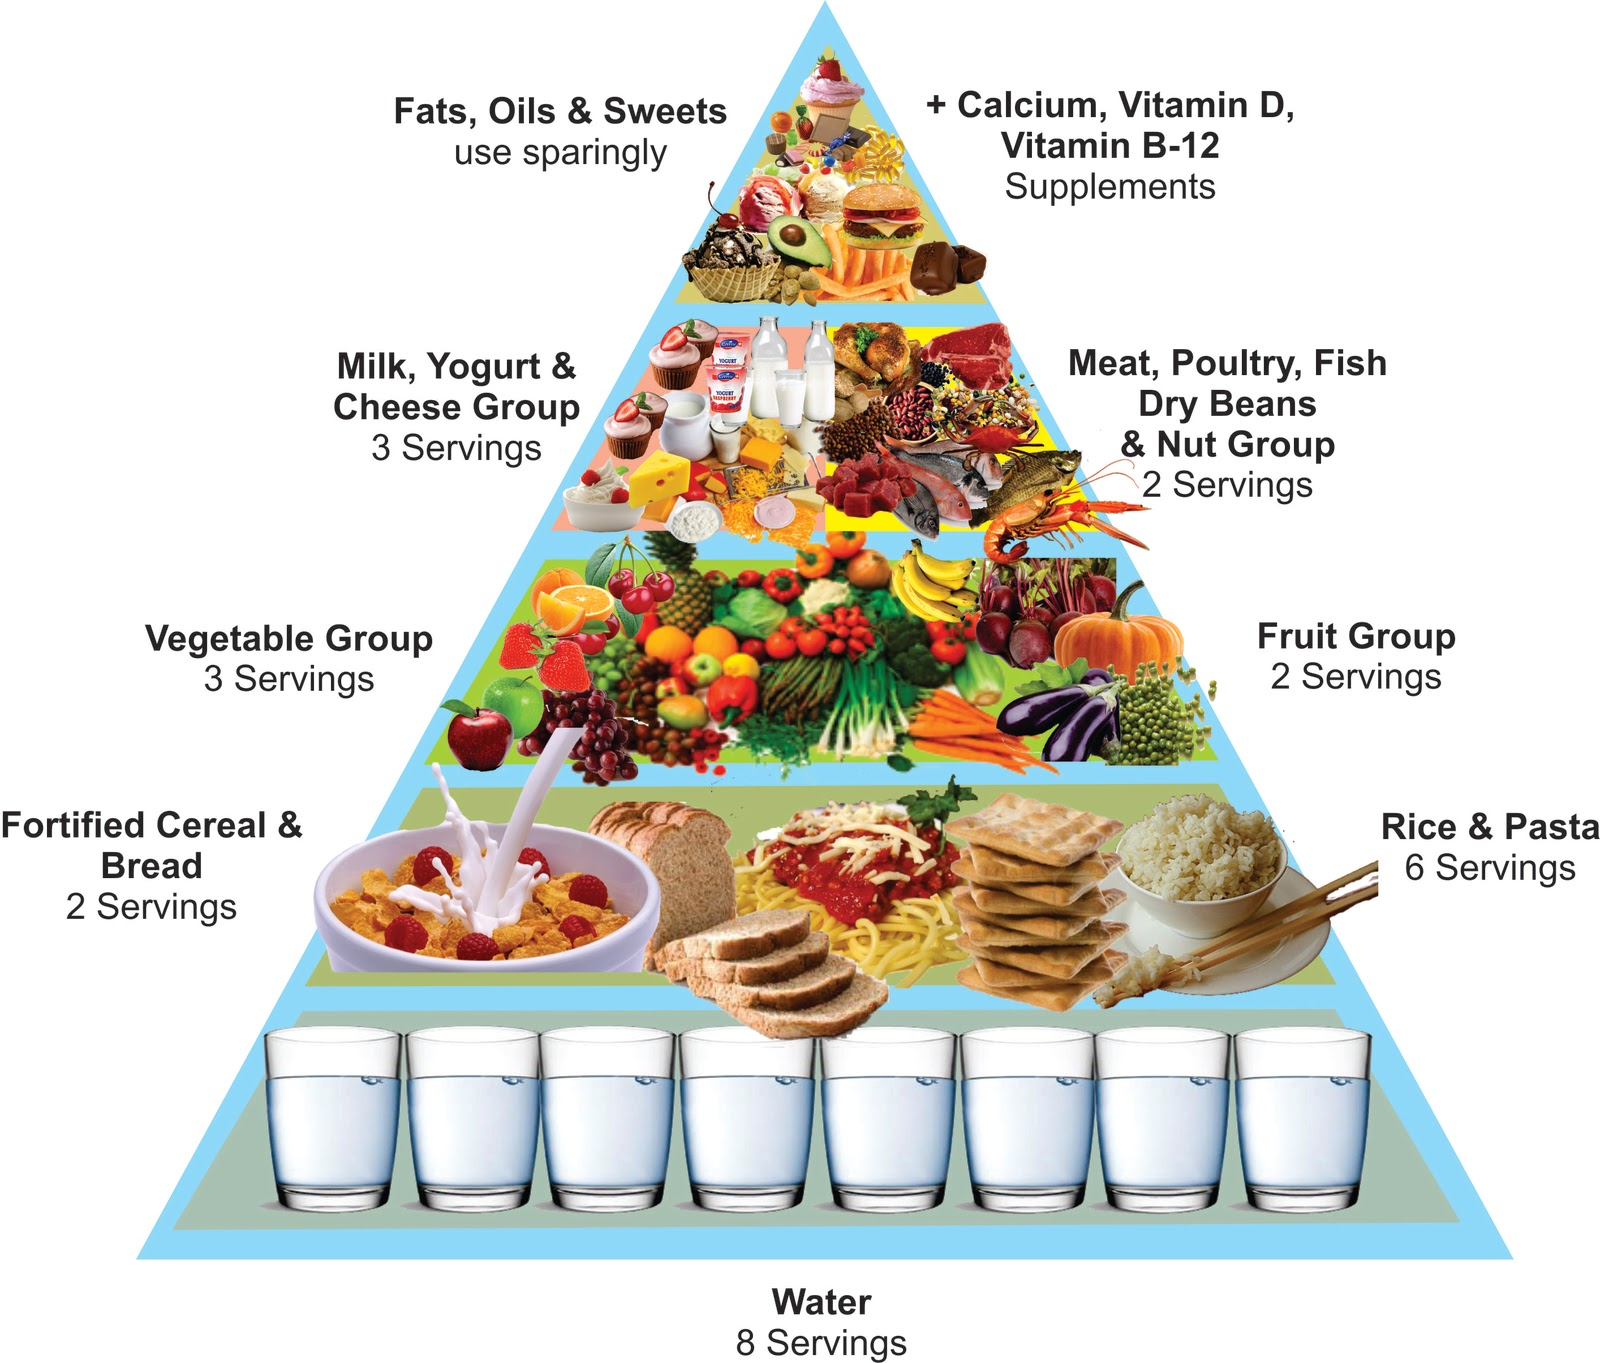 food choices that are ...